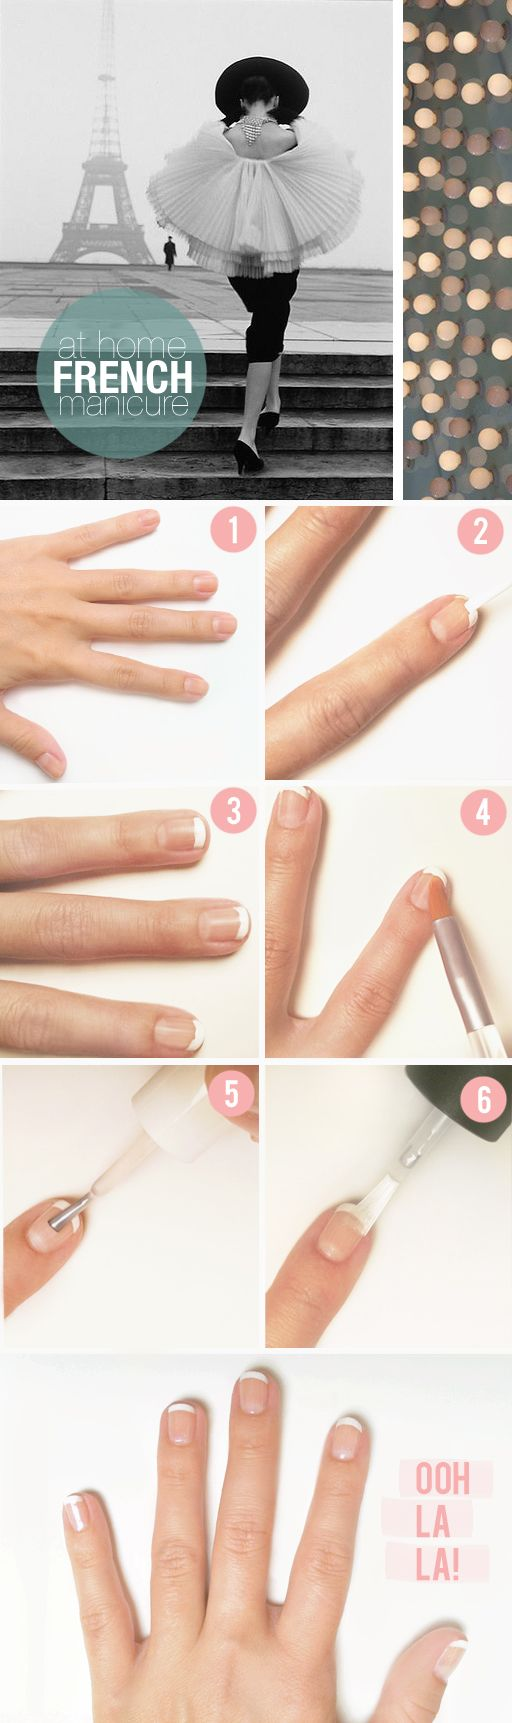 Easy french mani...the trick is a paintbrush to remove extra polish and soften the line.